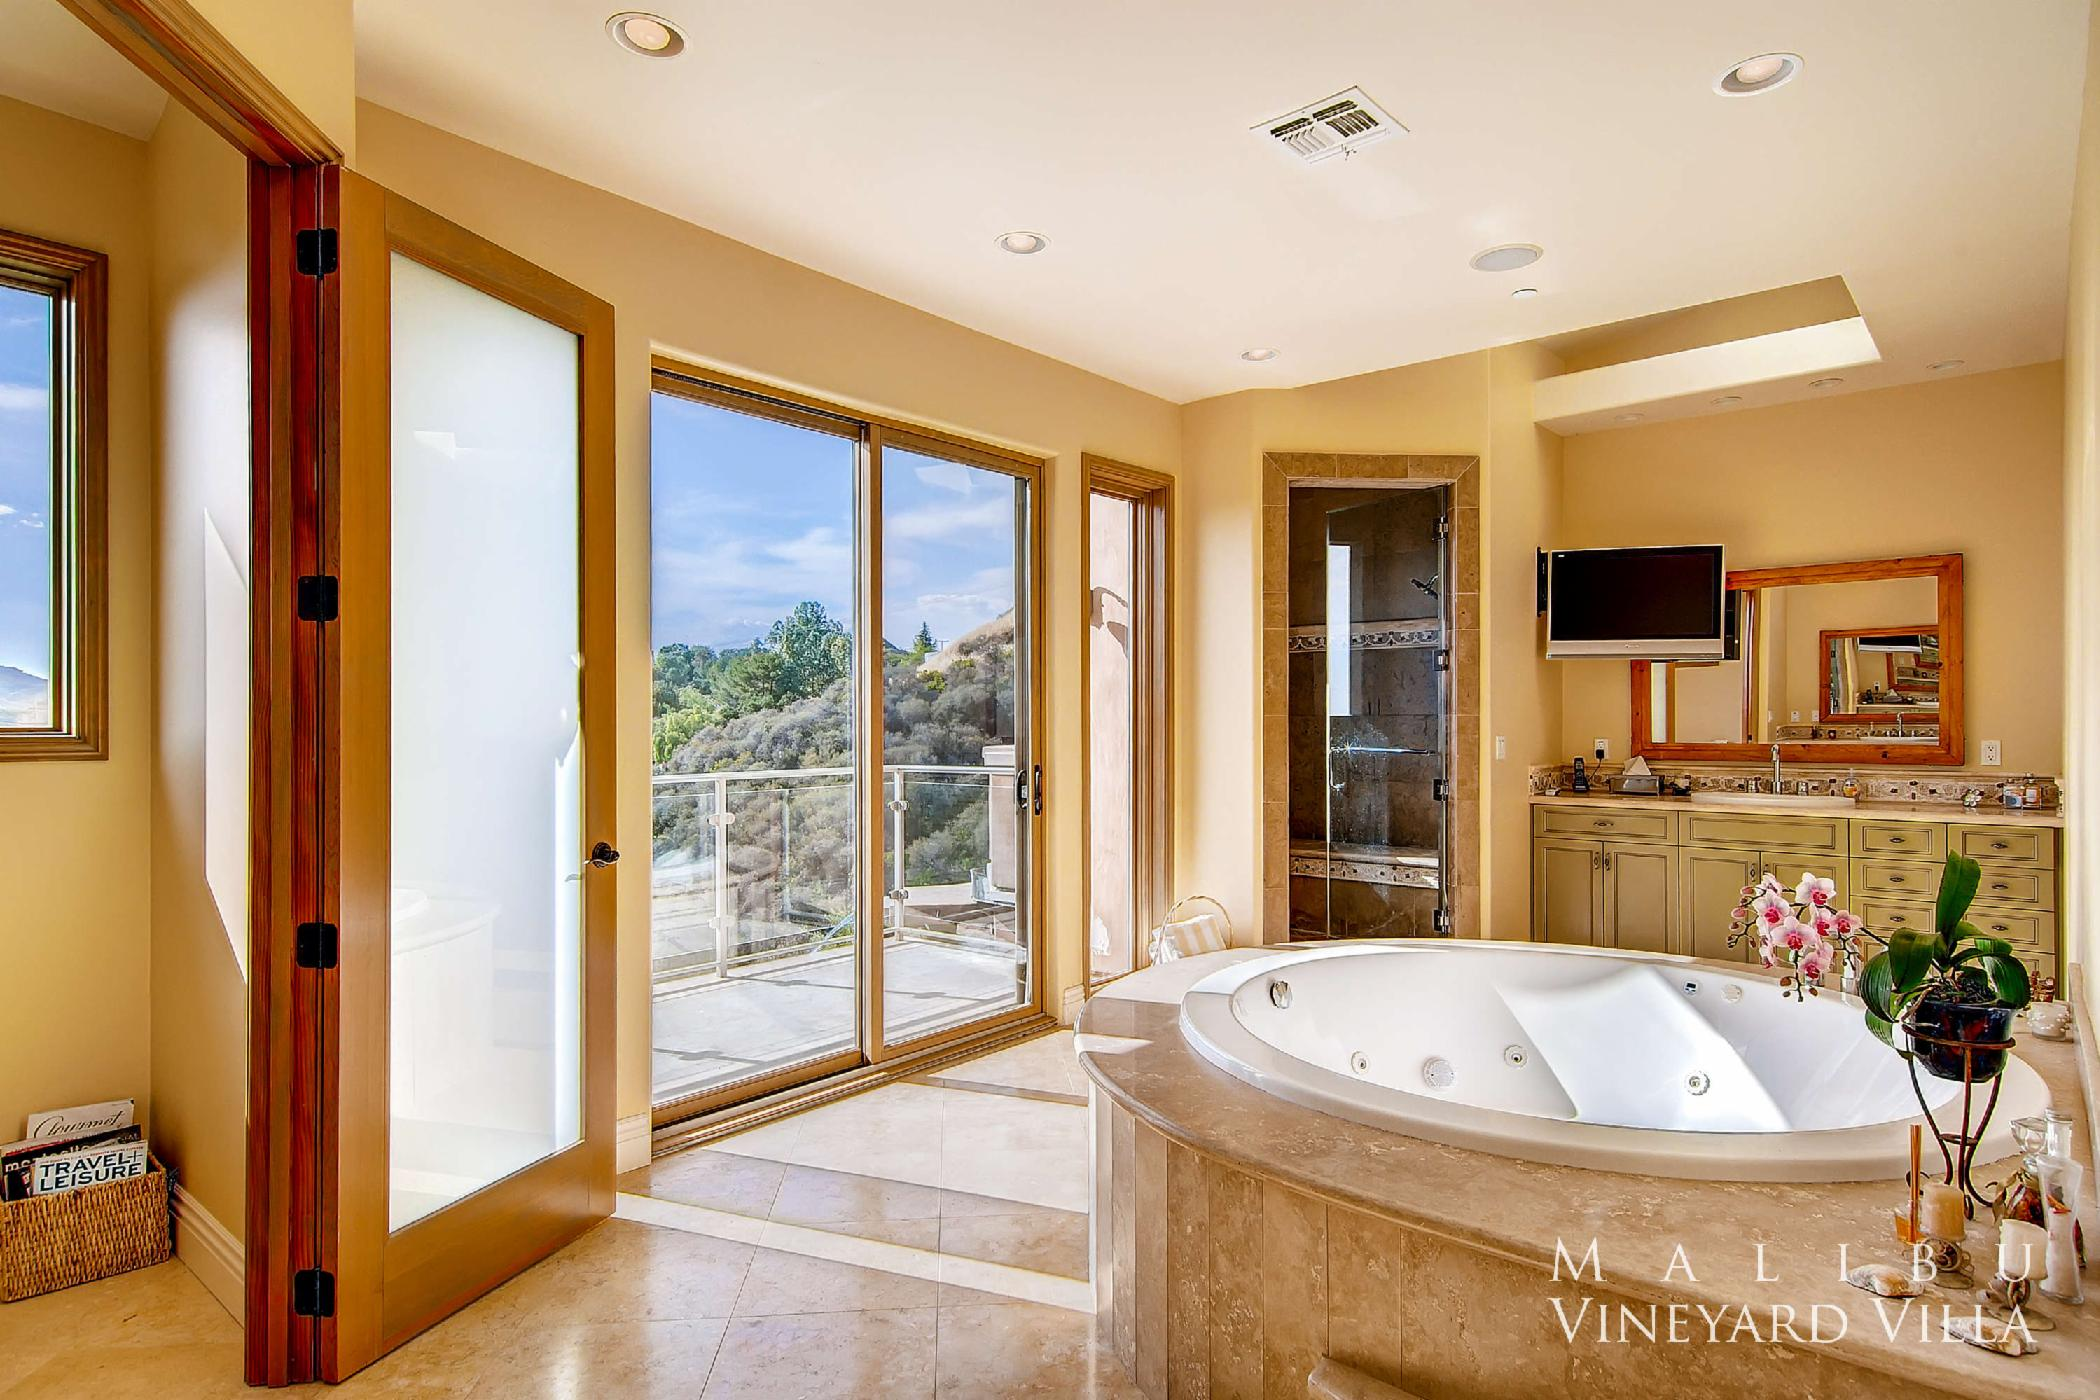 Malibu Vineyard Villa